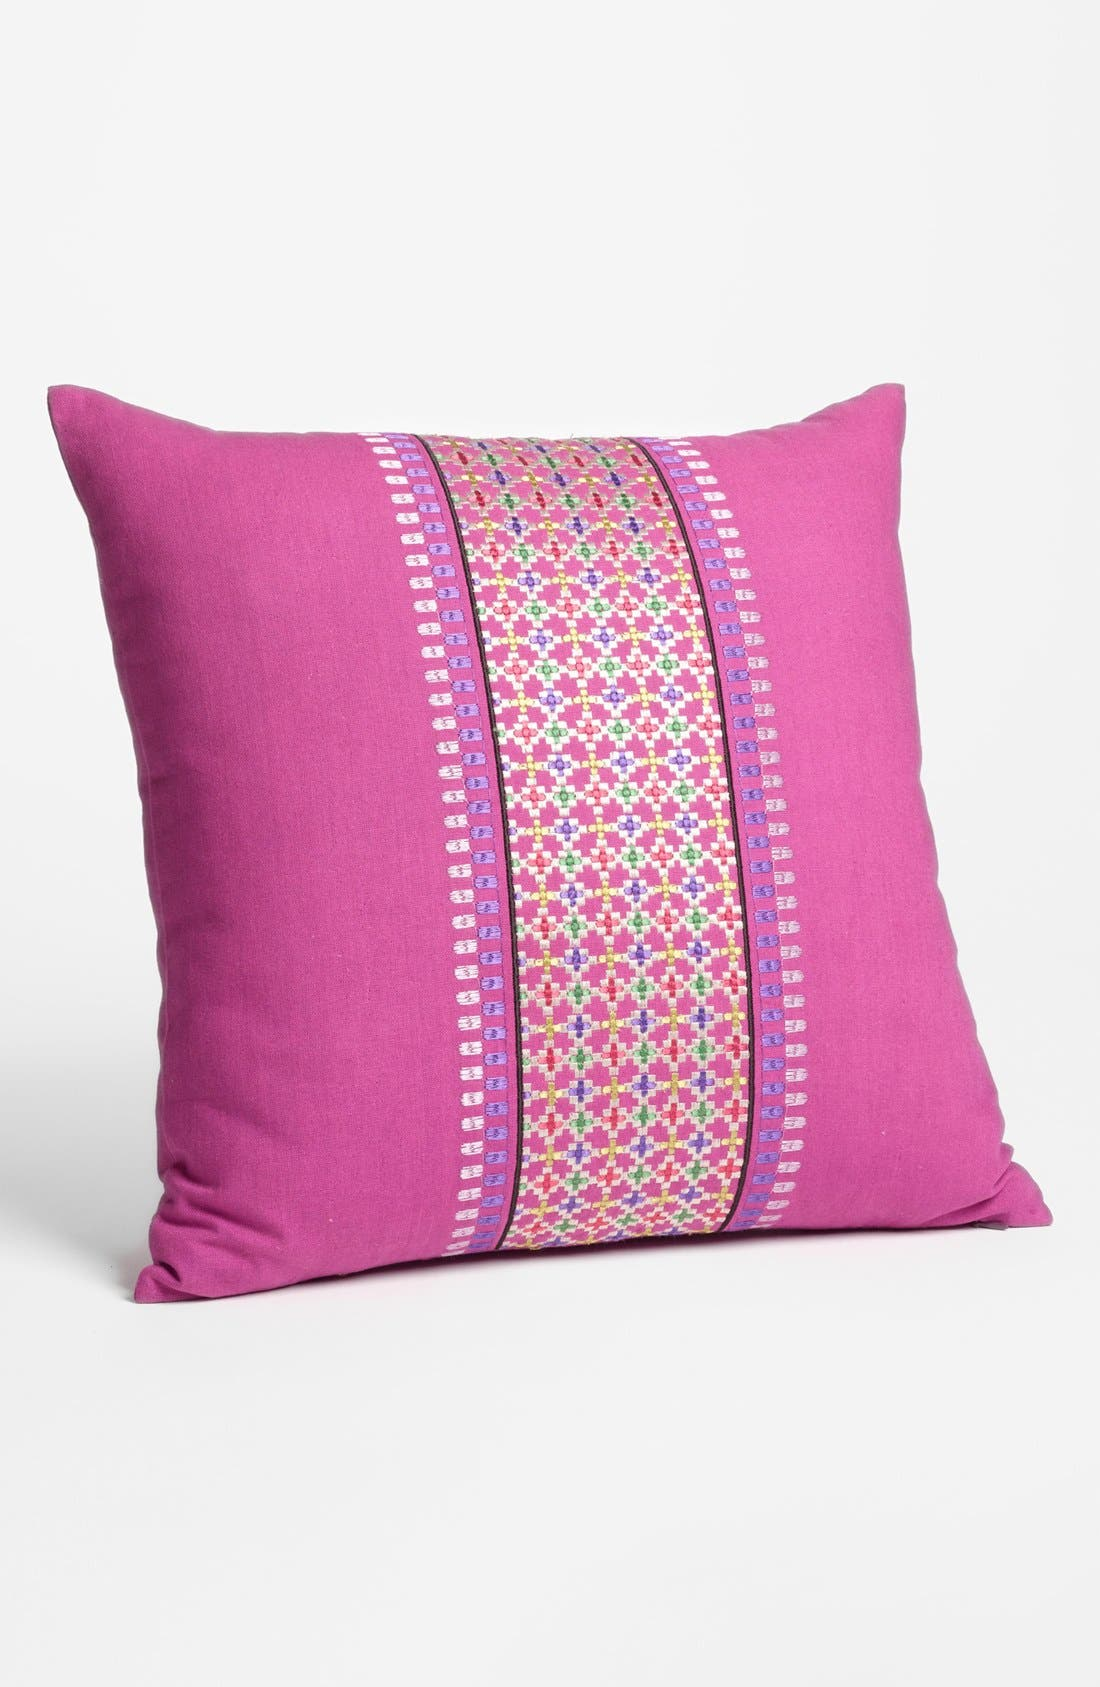 Alternate Image 1 Selected - Echo 'Vineyard' Pillow